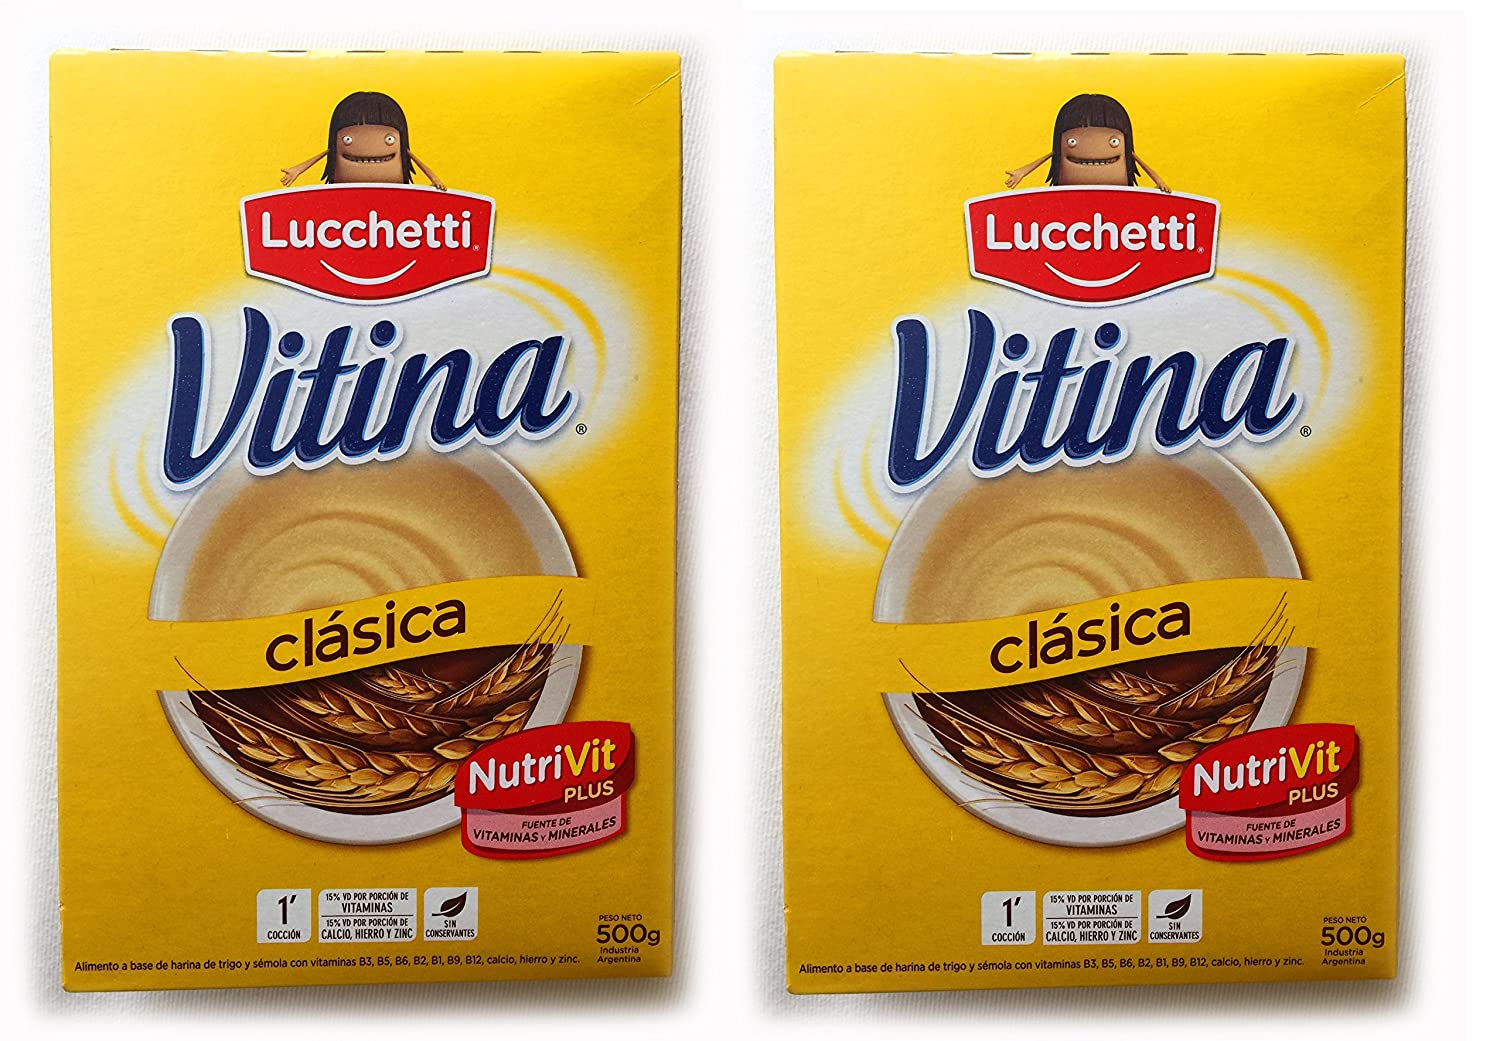 Amazon.com : VITINA Clasica Alimento a Base de Semola y Trigo 500 gr.- 2 Pack | Semolina and Wheat-based Food 1.1 lb. - 2 Pack : Grocery & Gourmet Food